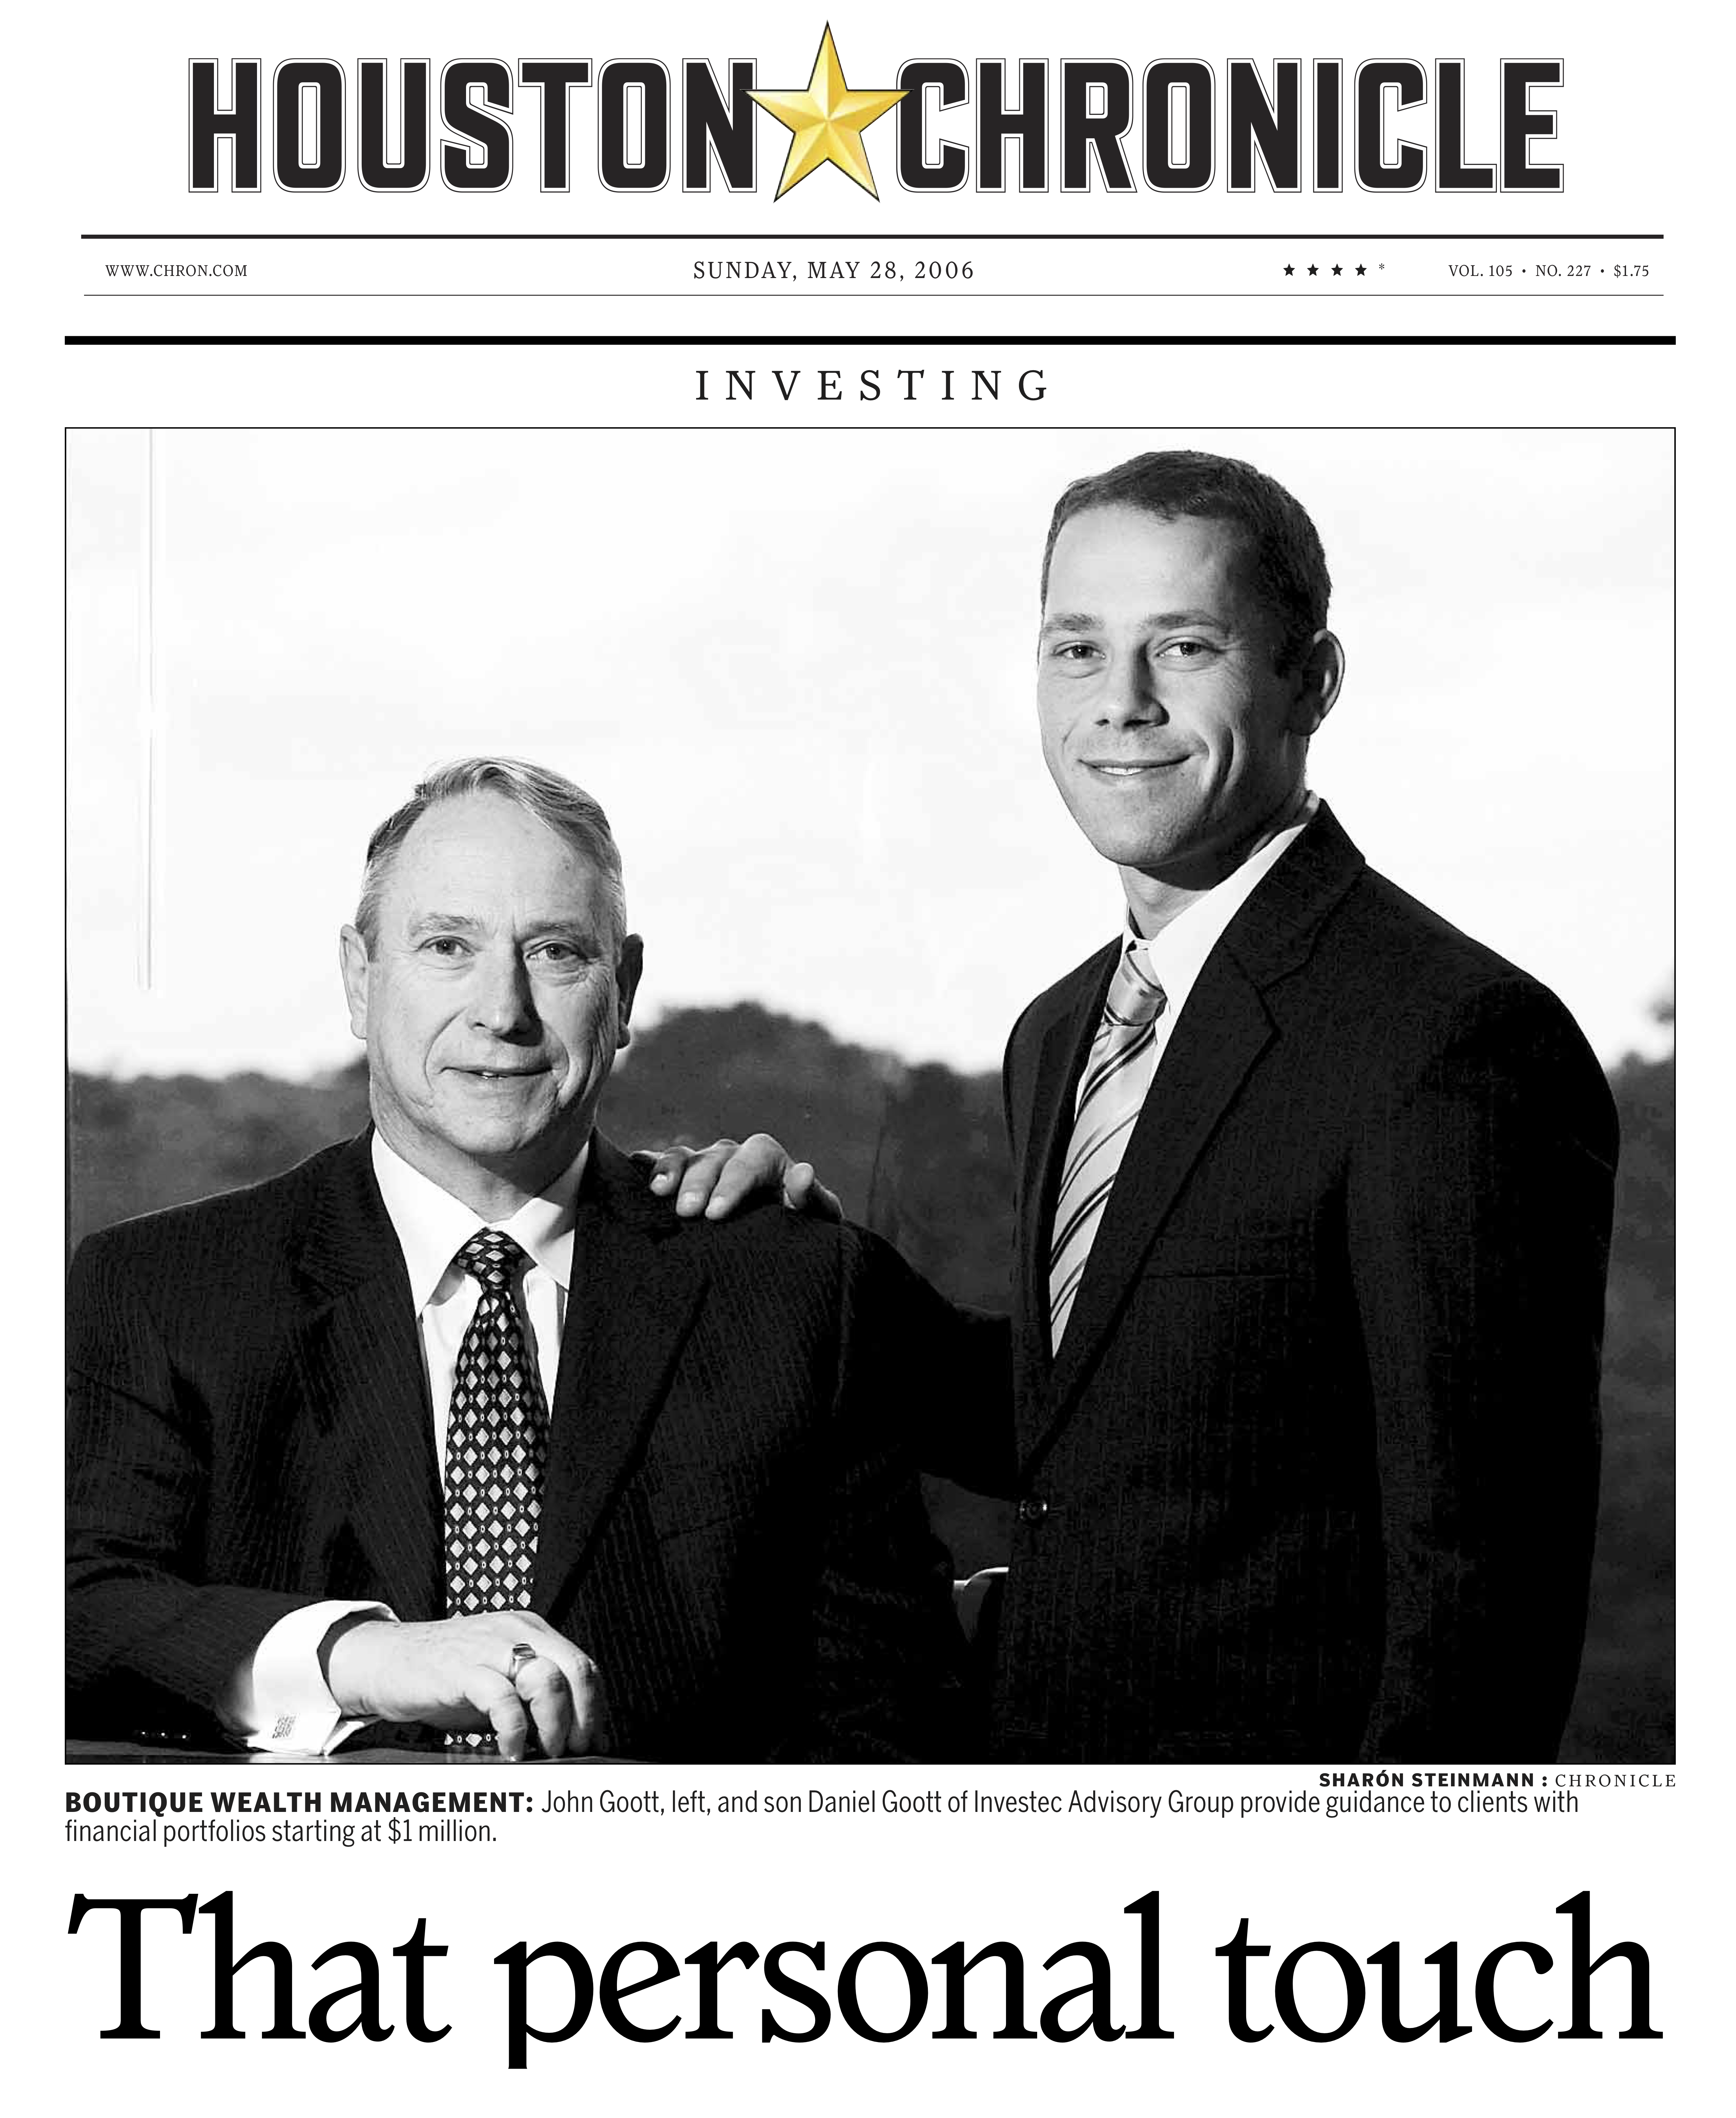 Investec - Houston Chronicle Press Feature: That Personal Touch, 2006